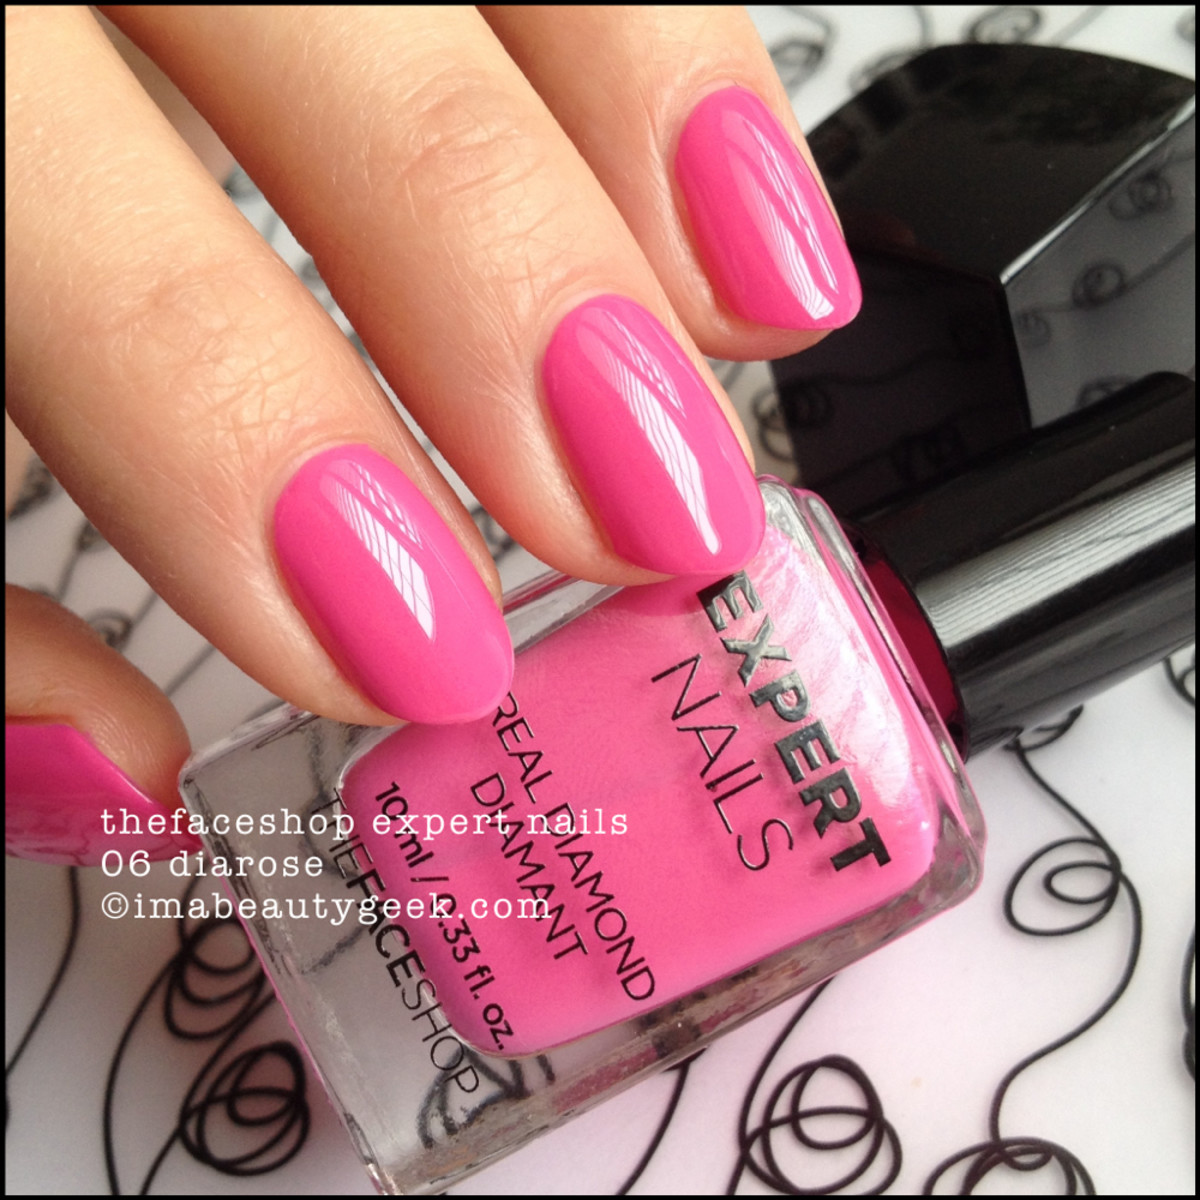 TheFaceShop Expert Nails 06 Diarose Swatch